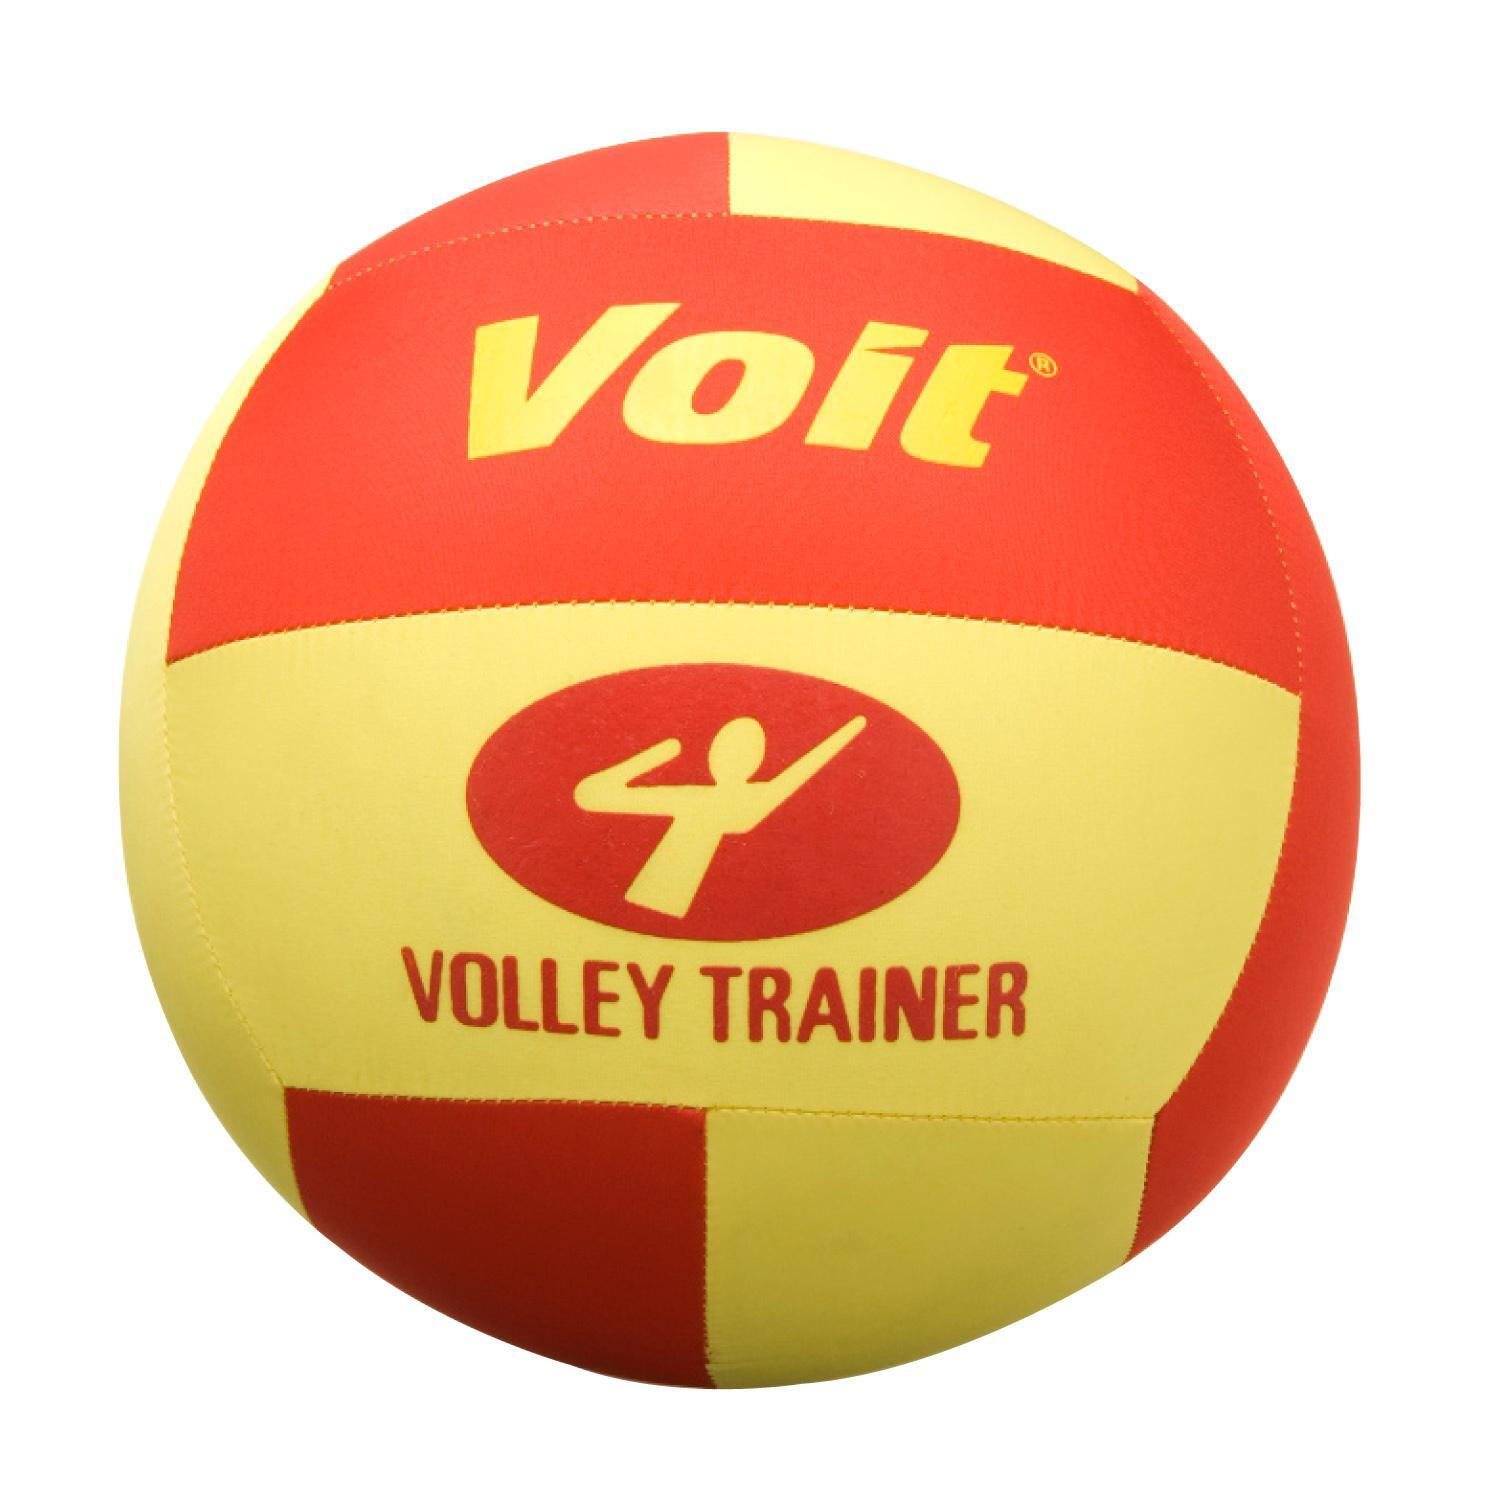 Prism Pack of 6 Voit Enduro Volley Trainer